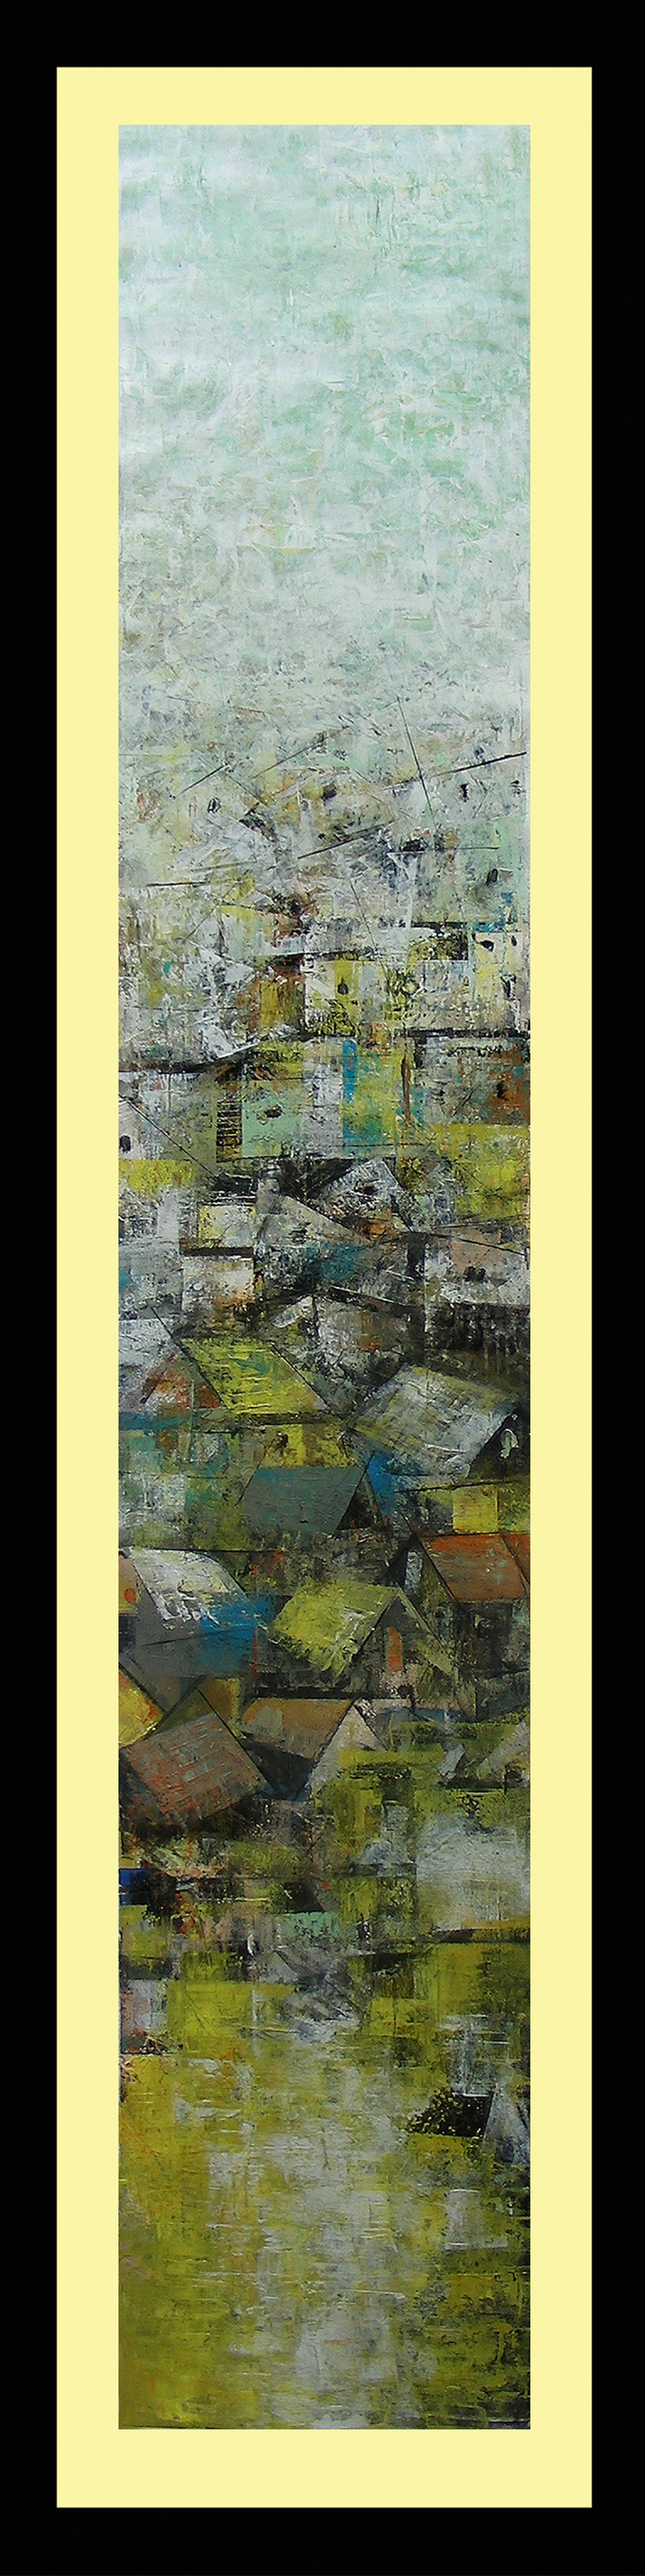 Title a glimpse of village  %28with framed%29   acrylic on canvas  48 x 9 in